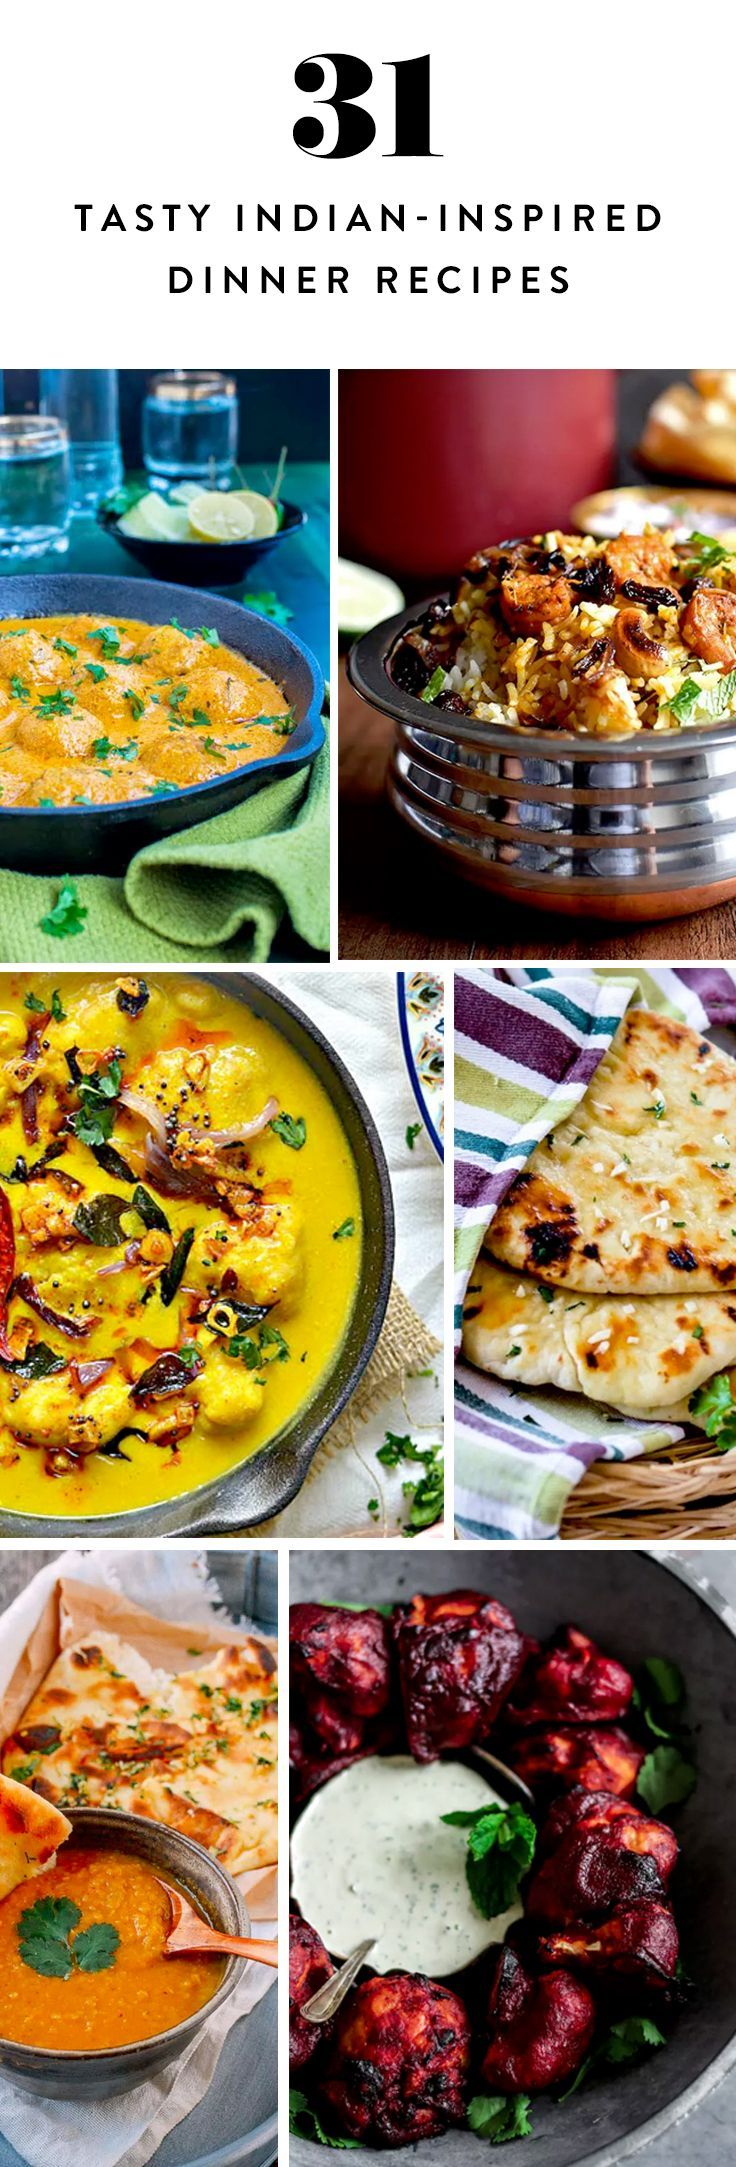 74 best indian vegetarian recipes images on pinterest dinners 31 indian inspired recipes to try for dinner tonight forumfinder Image collections